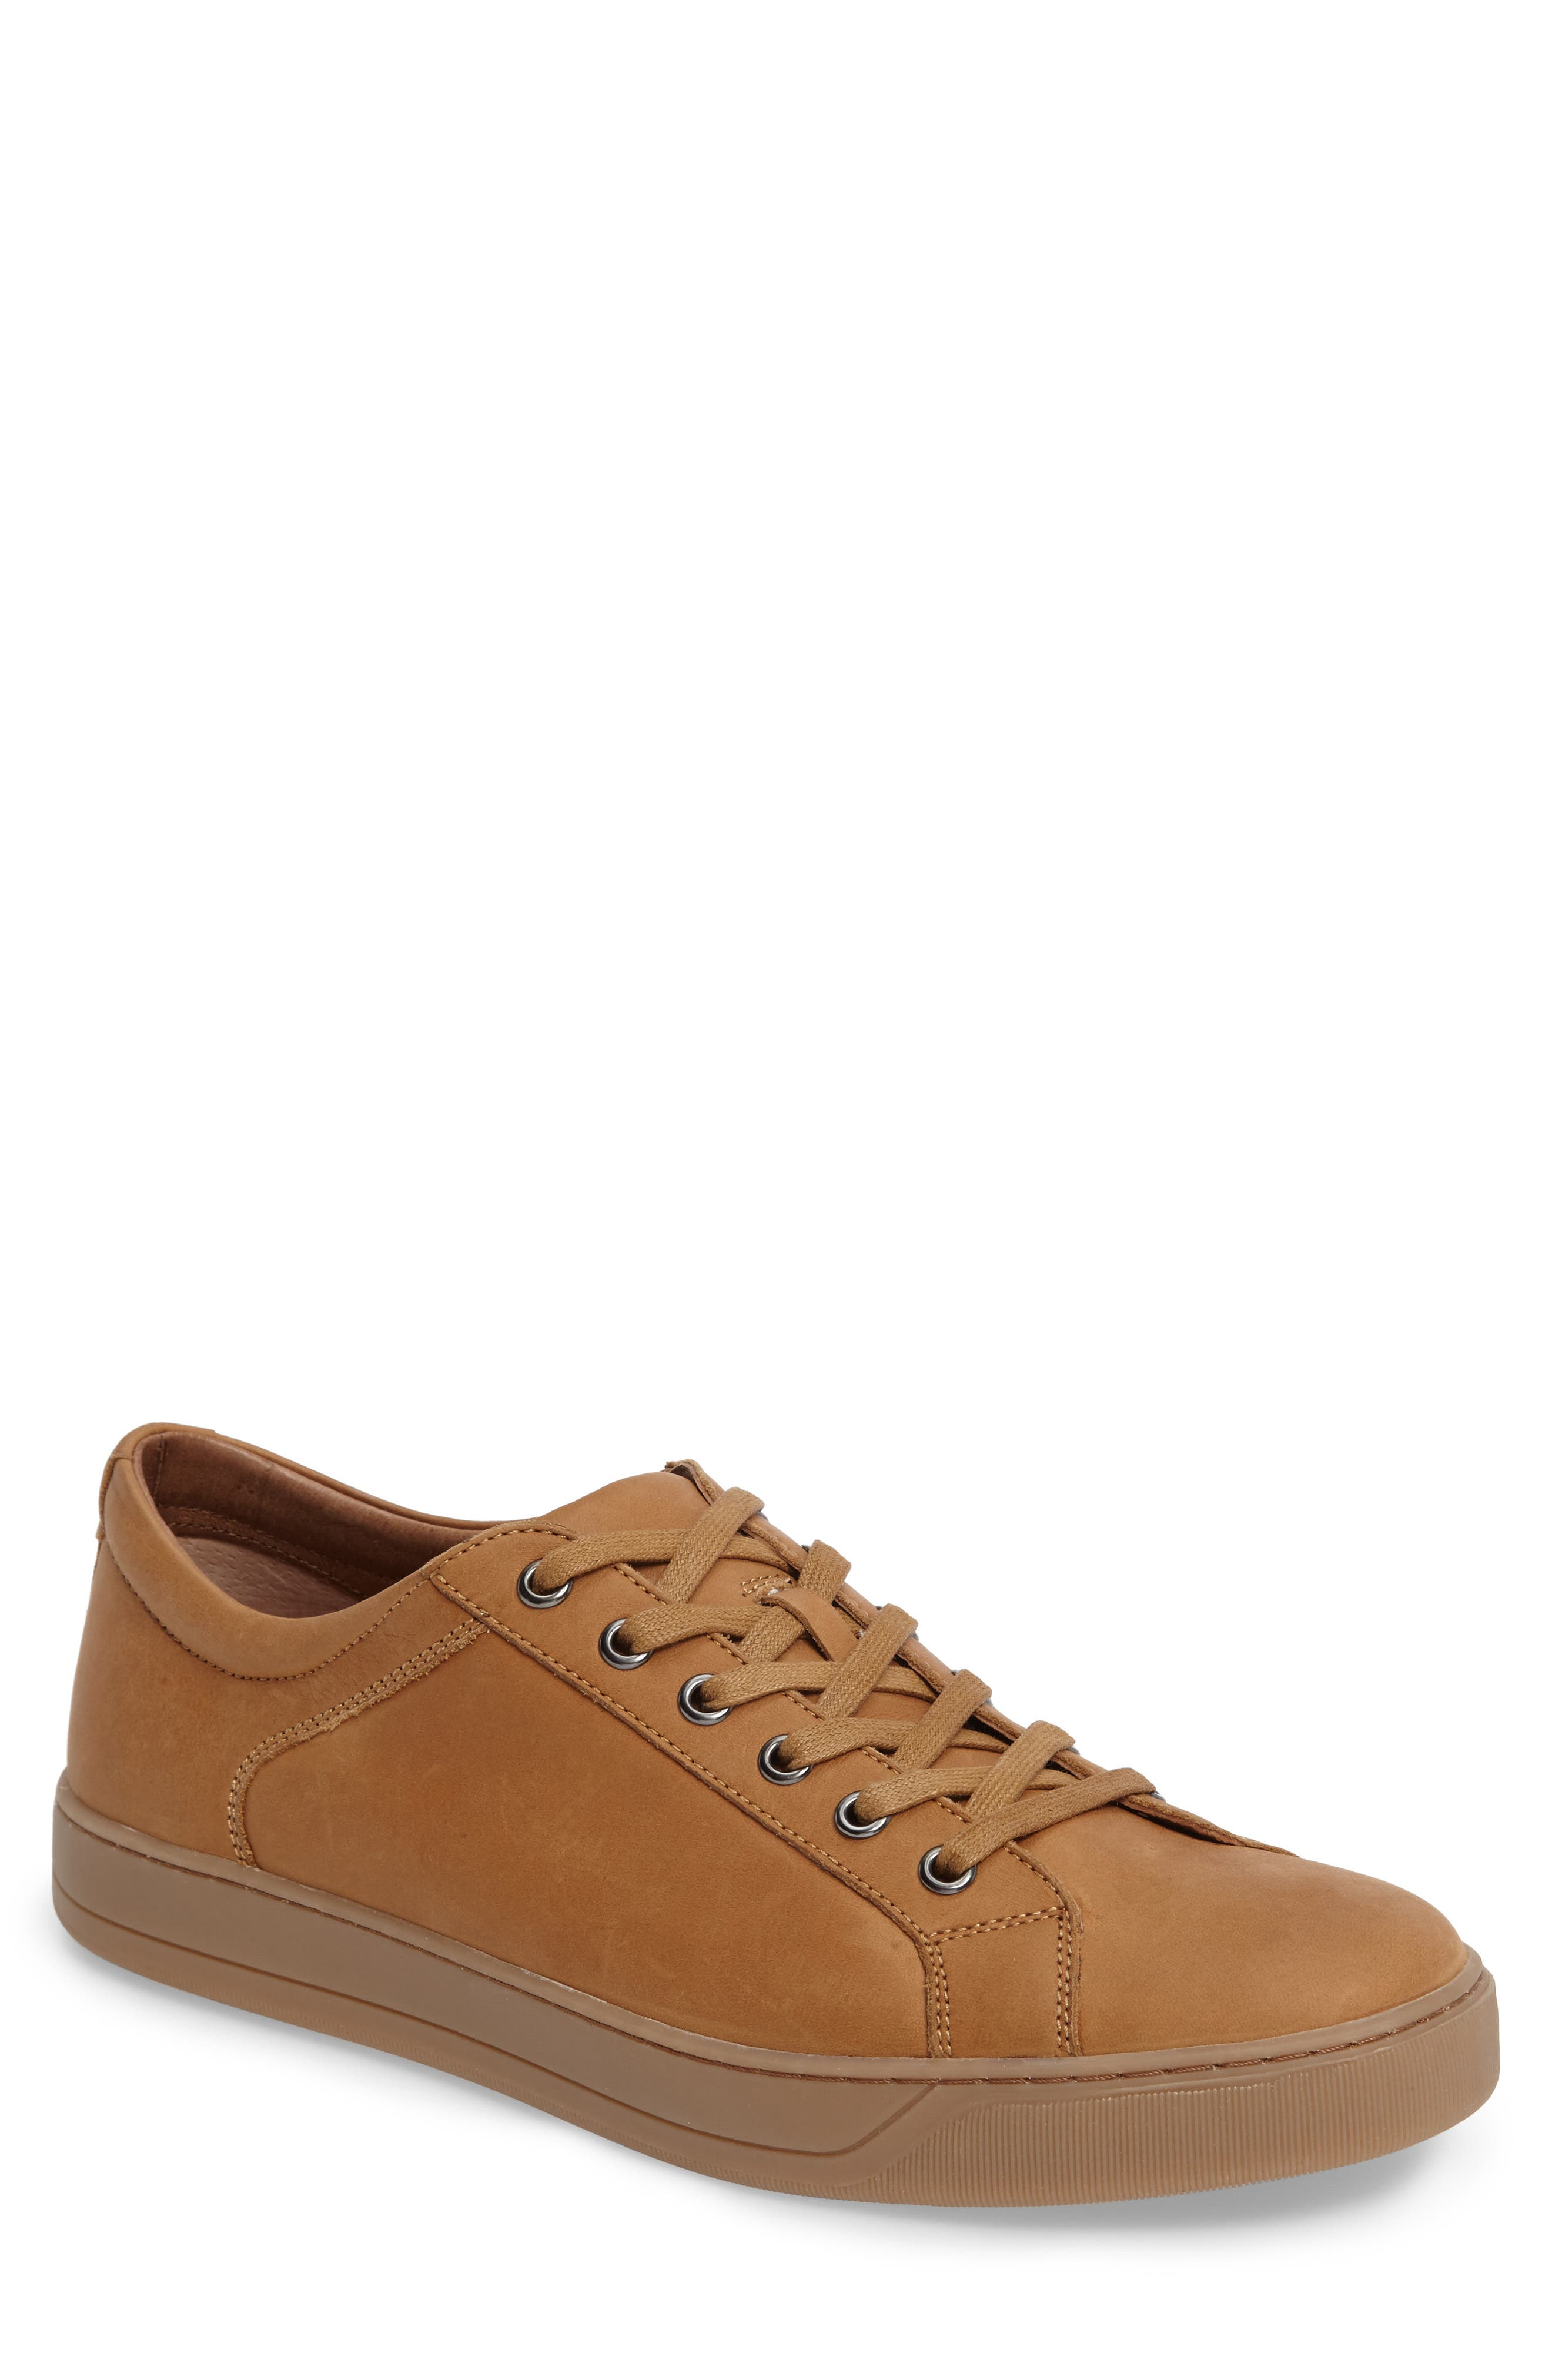 Allister Sneaker,                             Main thumbnail 1, color,                             Natural Leather